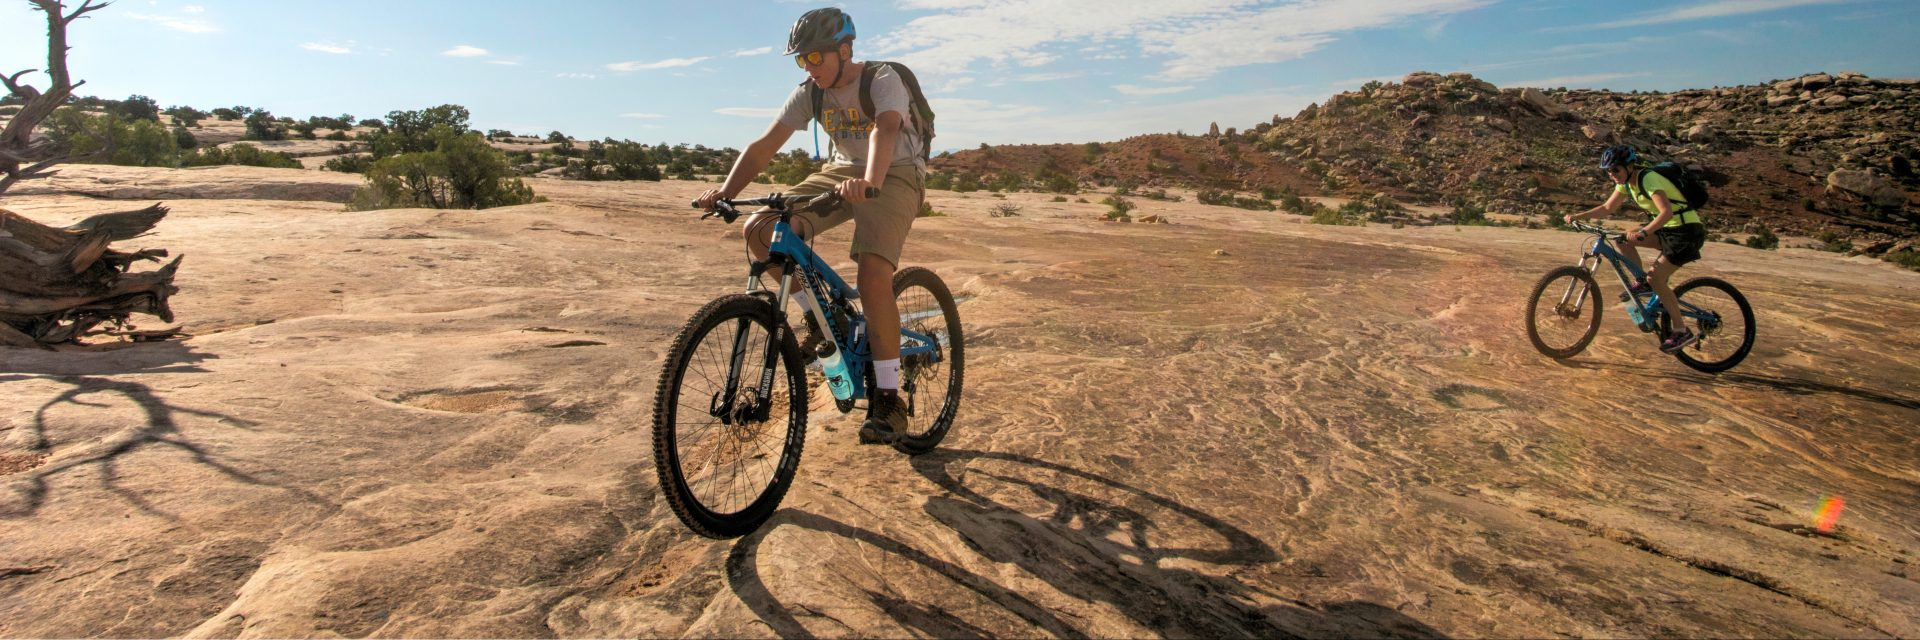 Klondike Bluff Trail's slickrock slab is smooth, perfect for moderate - intermediate mountain bikers